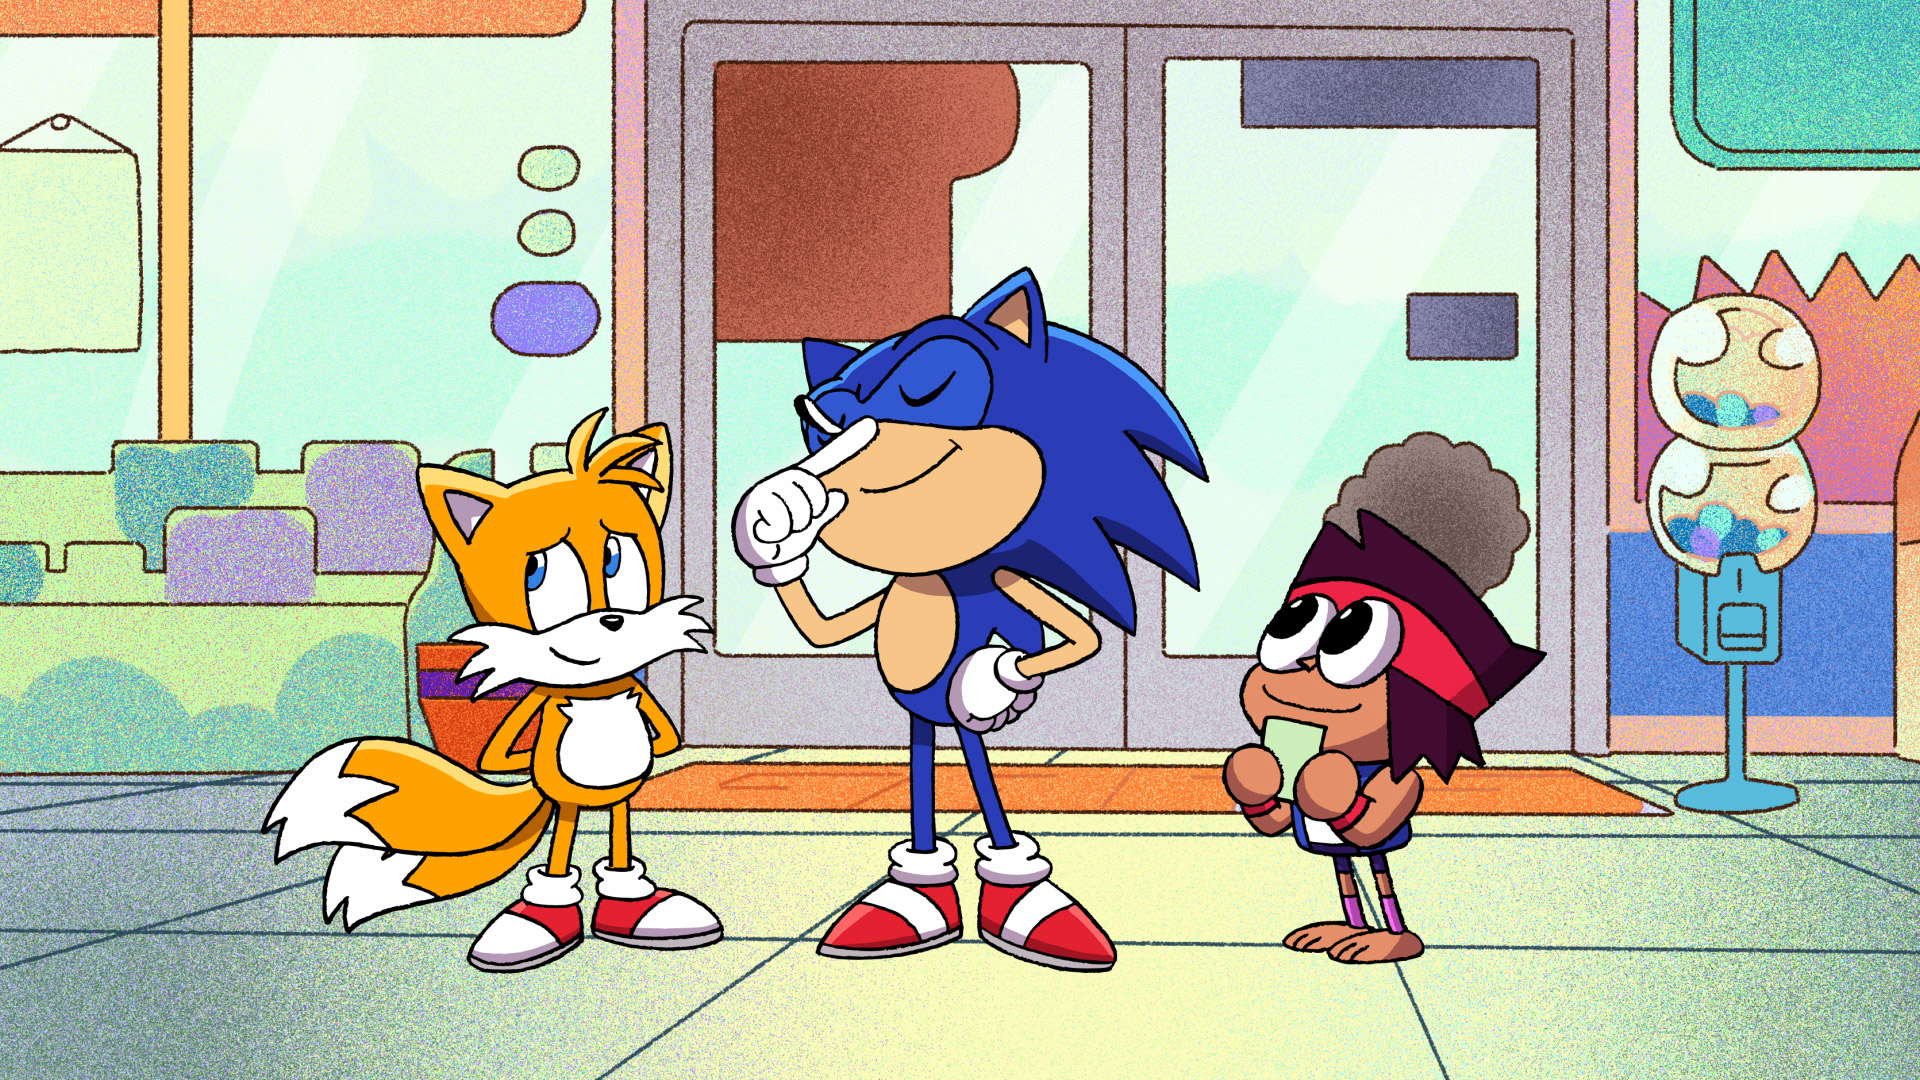 Sonic the Hedgehog is getting his own episode of OK K.O! Let's Be Heroes screenshot